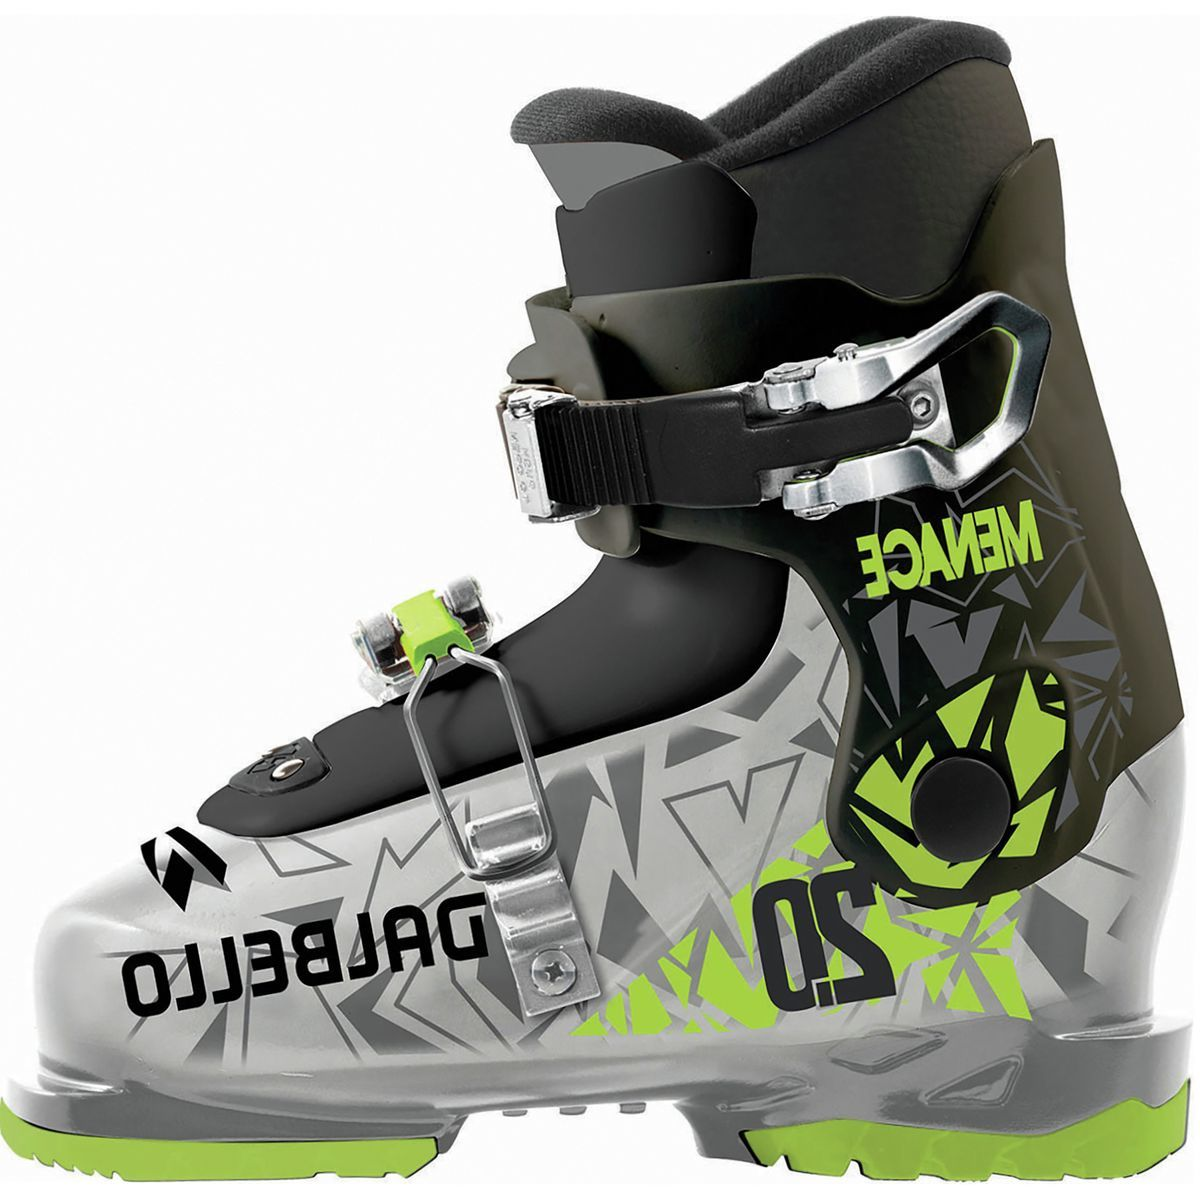 Dalbello Sports Menace 2 Ski Boot - Boys'